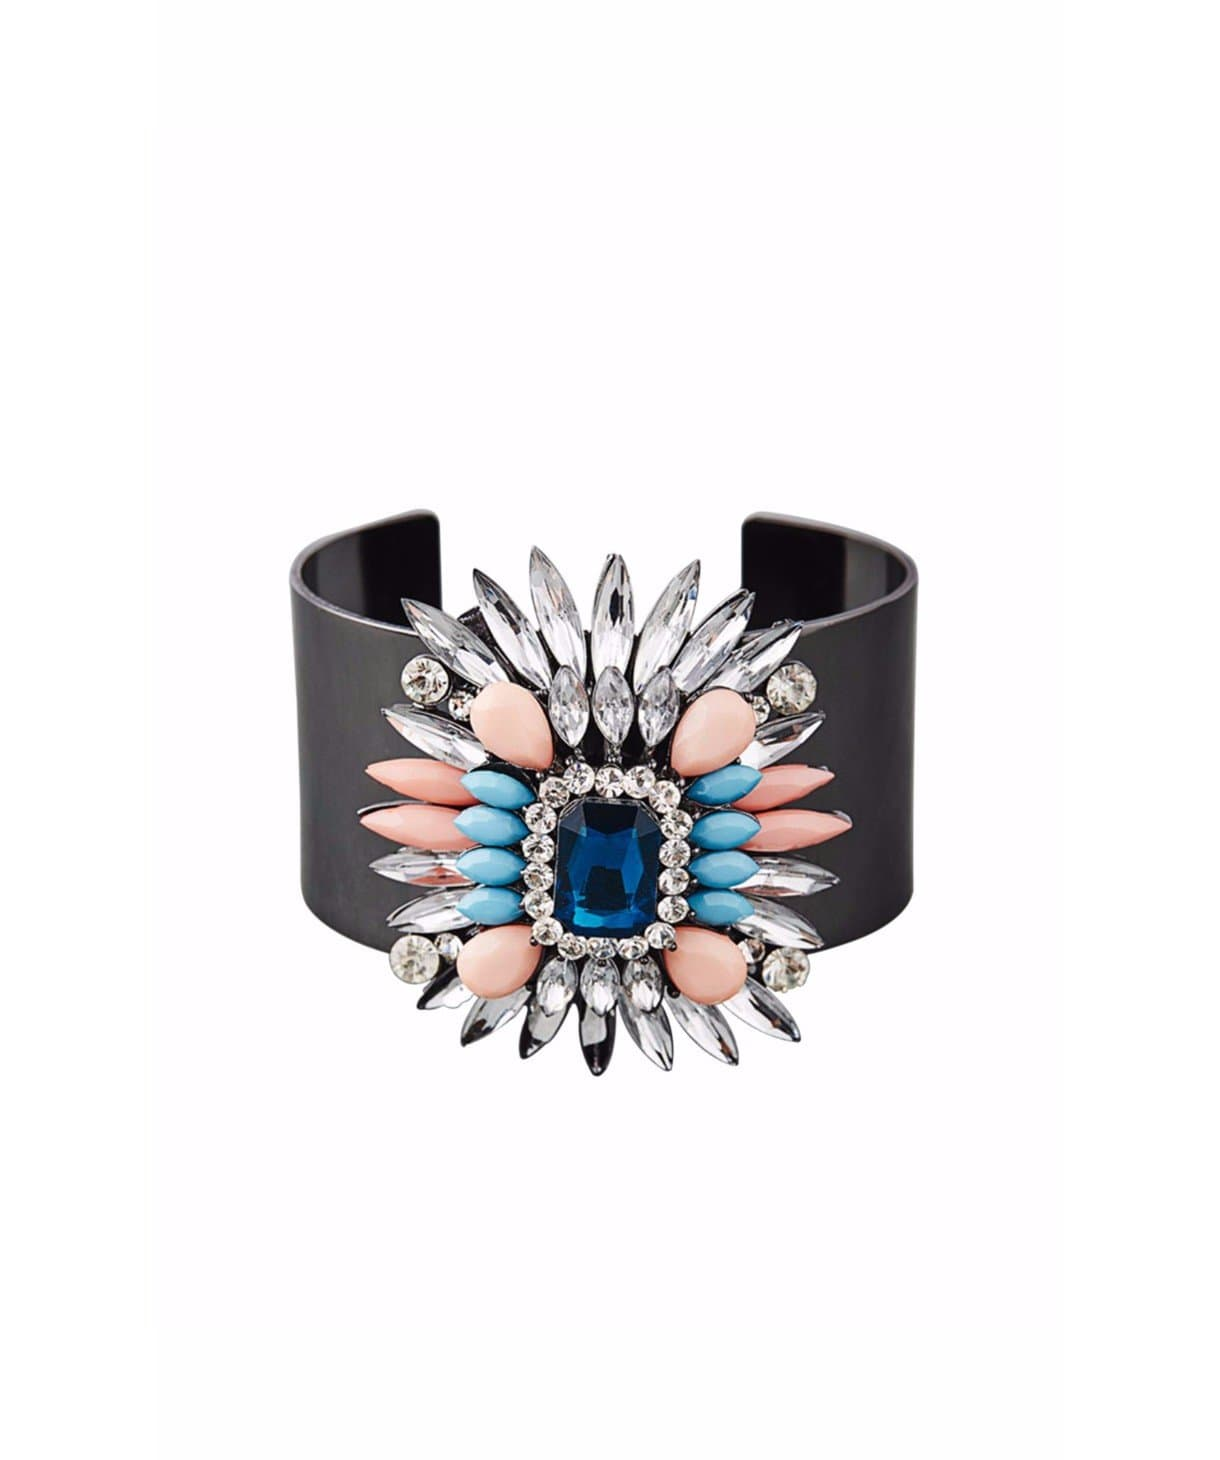 Bedazzled Cuff - Uptownie